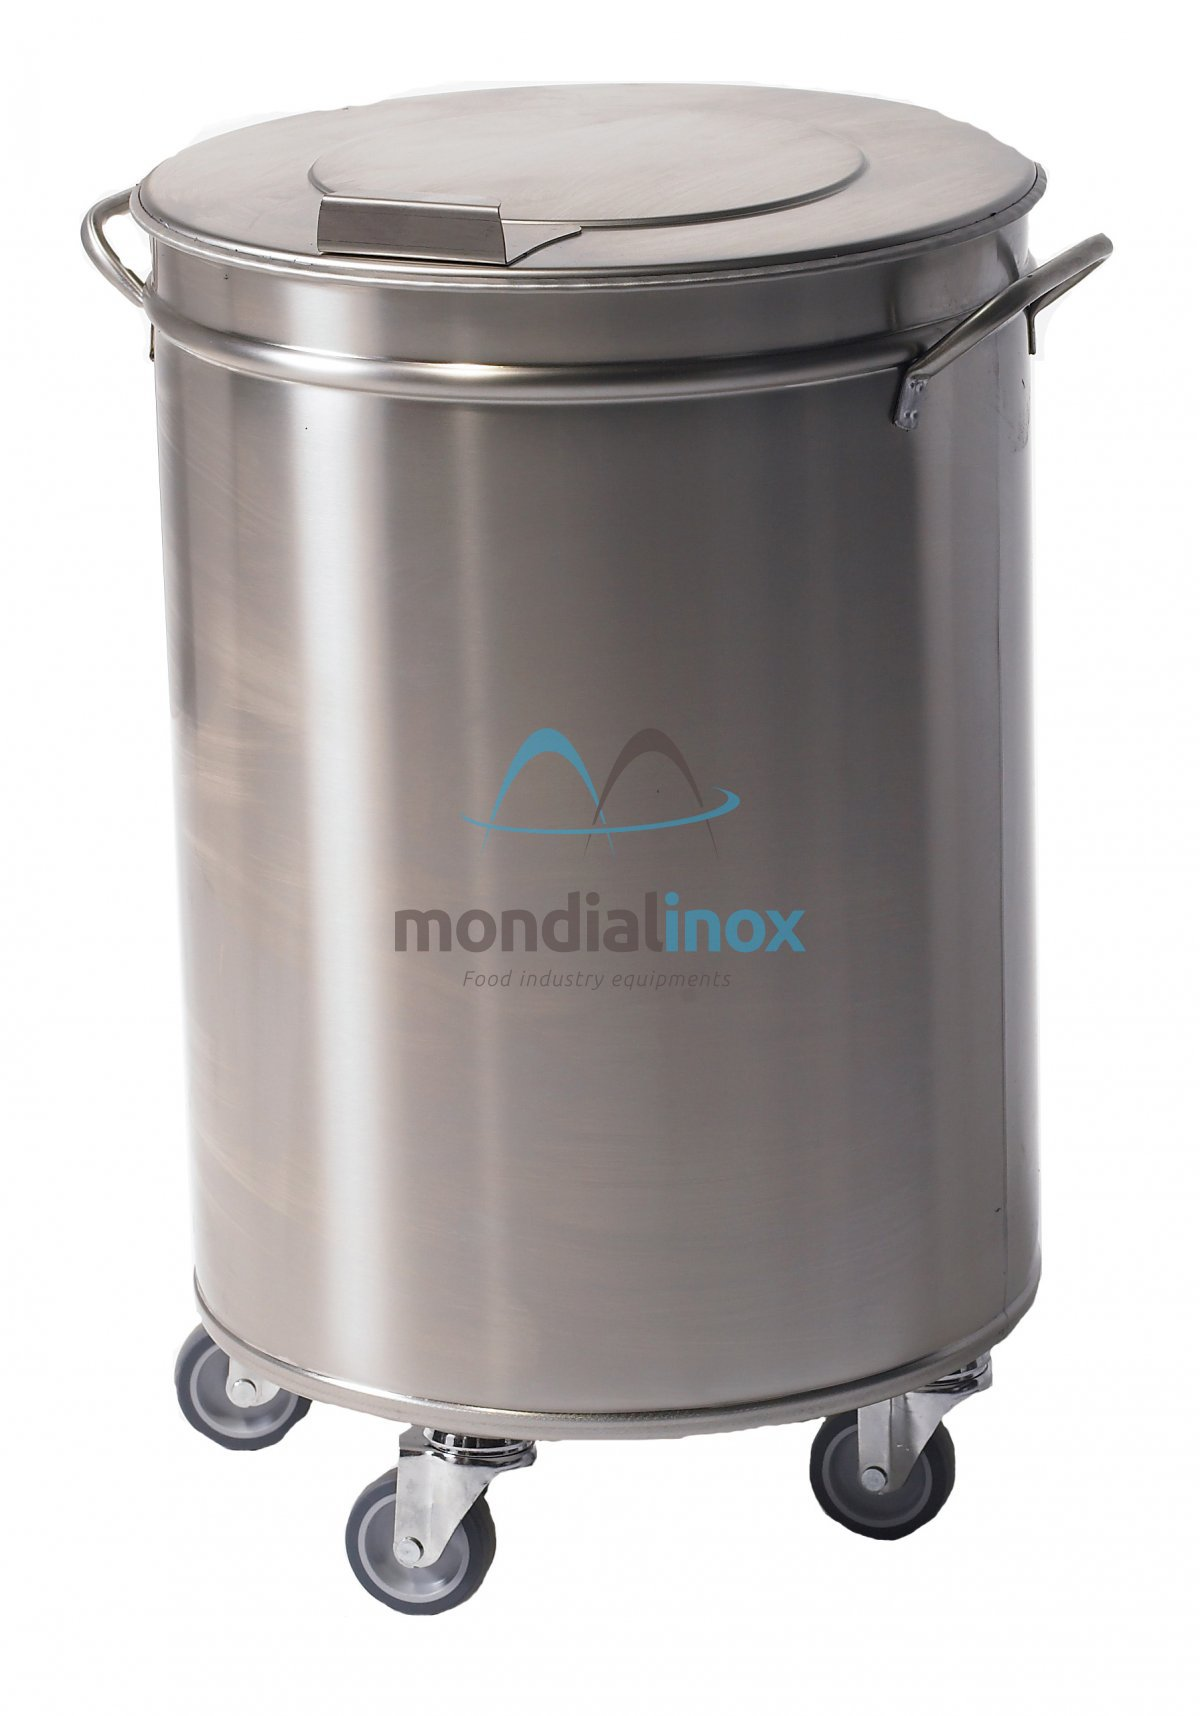 Stainless Steel Bin On Wheels With Pedal Dustbins